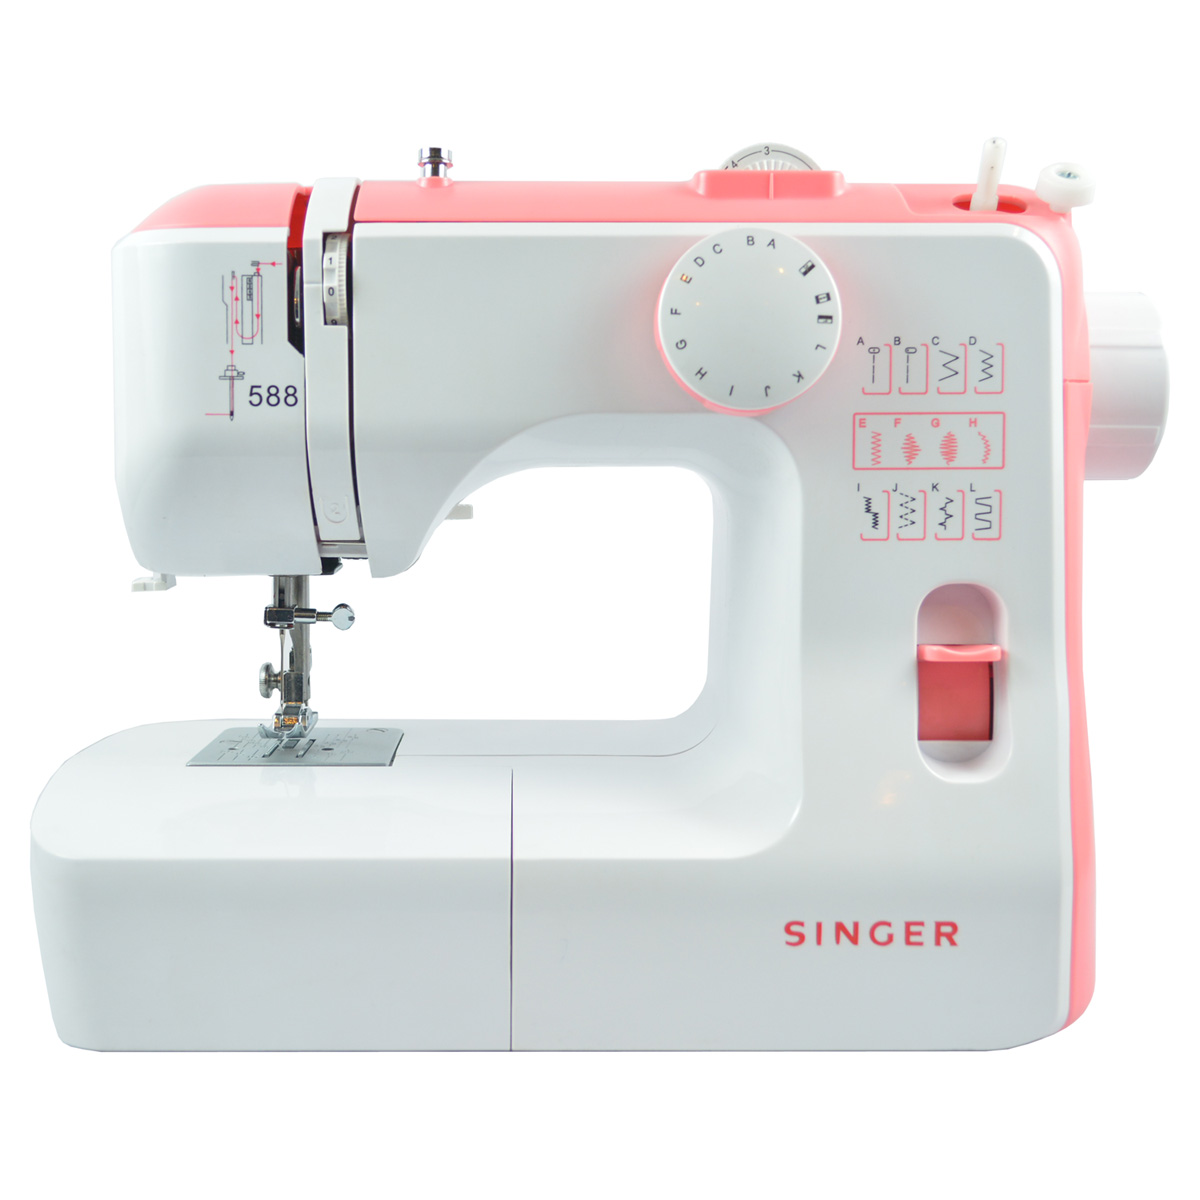 Buy Singer Sewing Machine Portable, 12 Built In Stitches ...